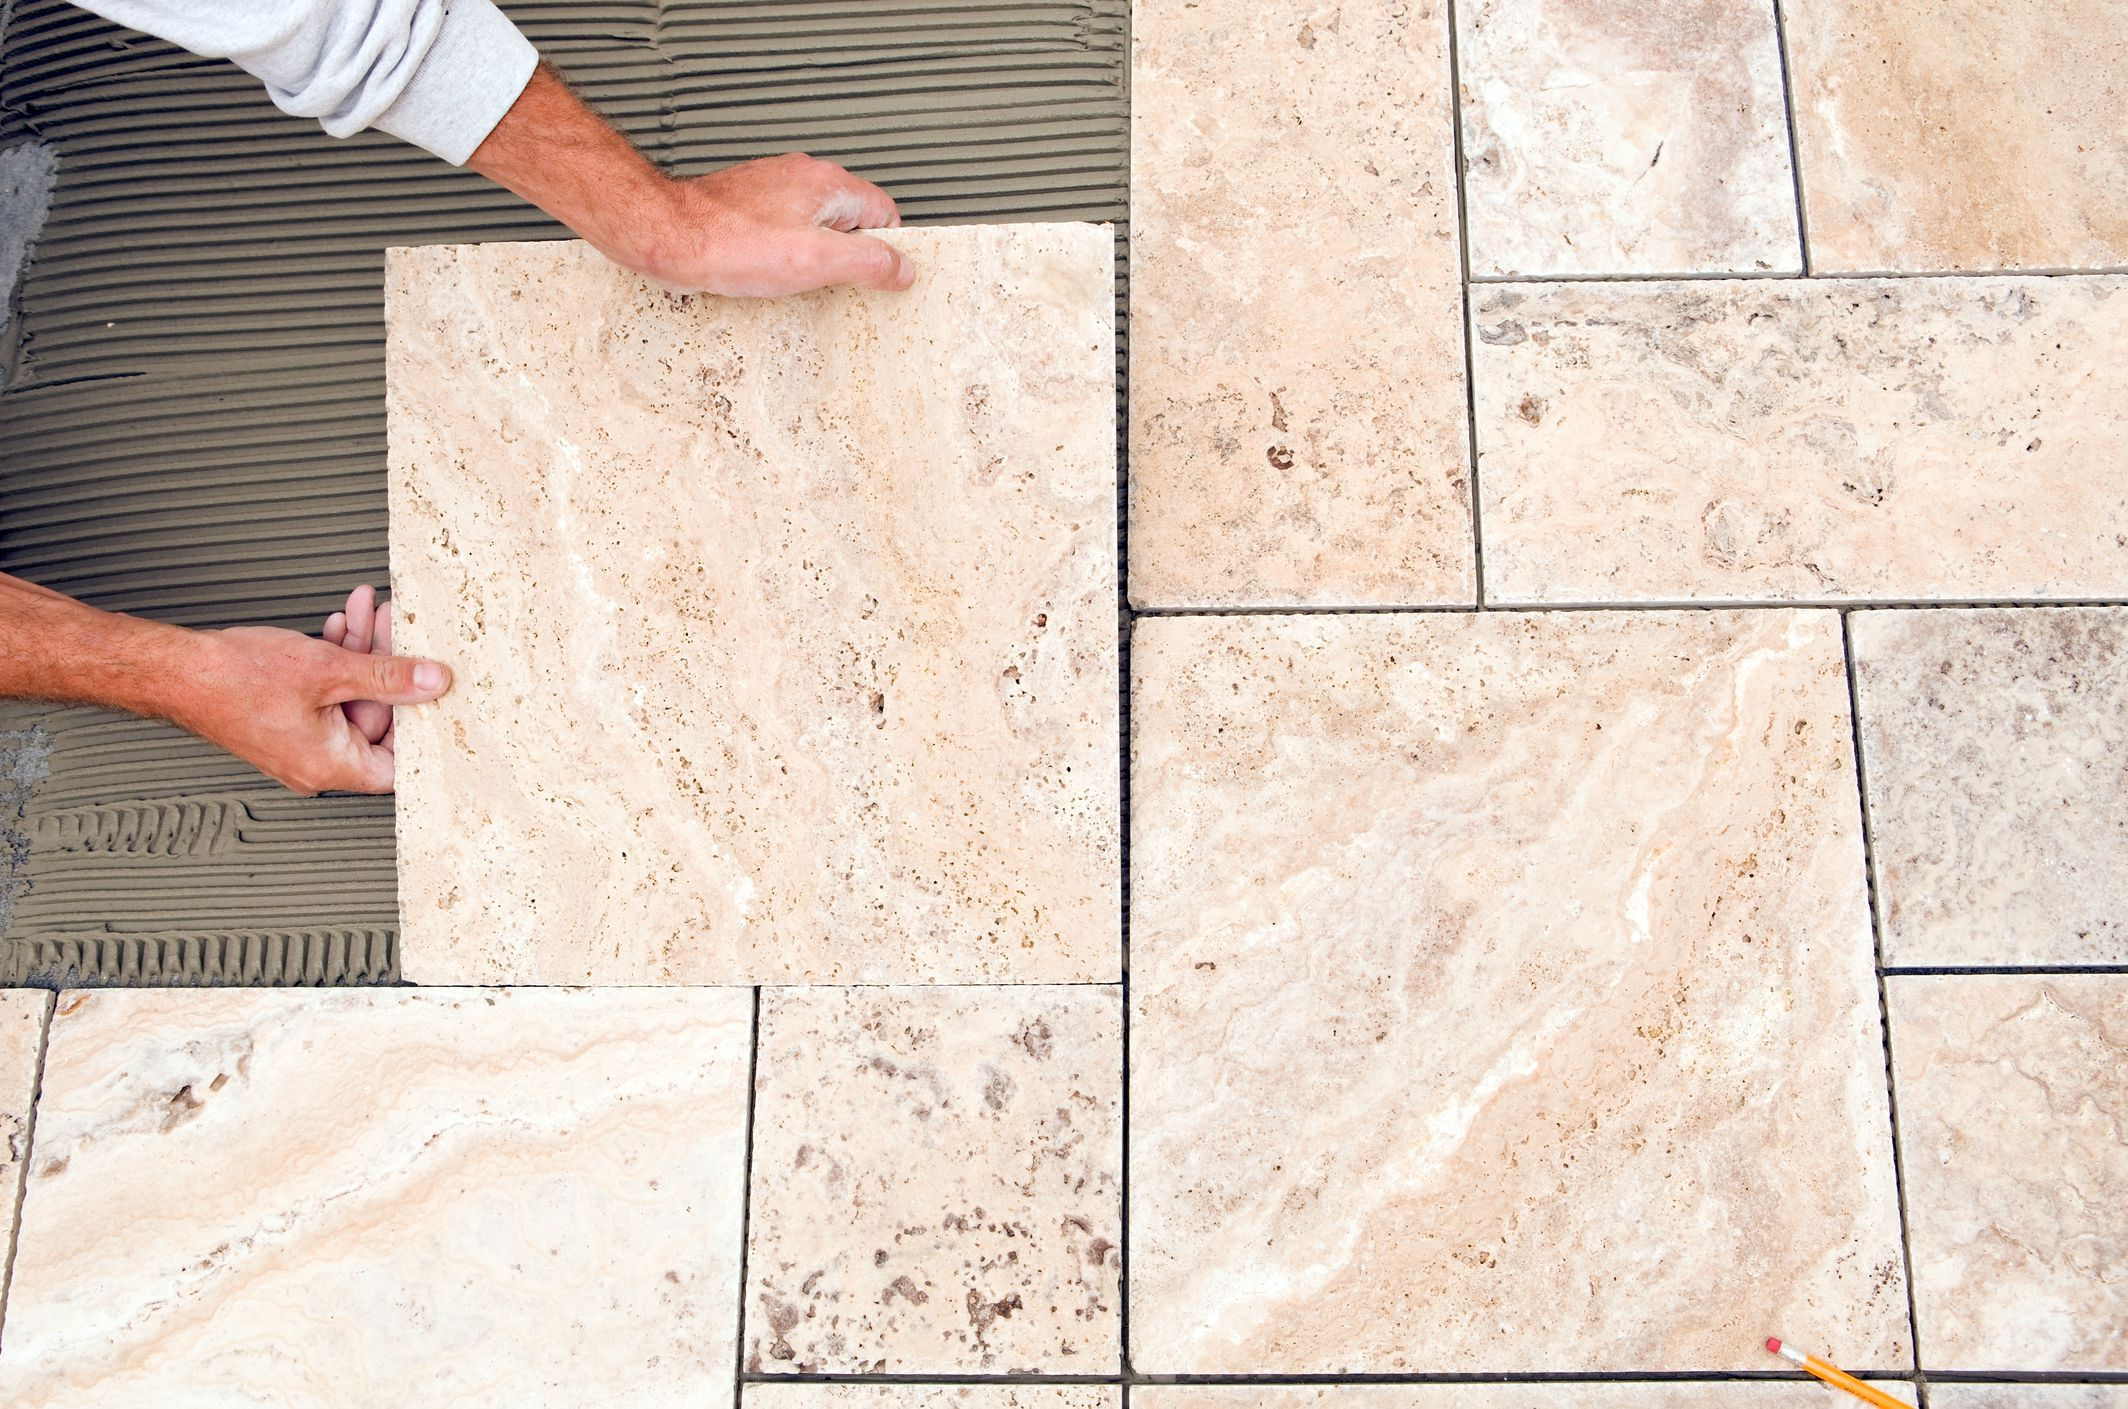 Tips For Laying Tile On Plywood Subfloor In 2020 Patio Tiles Ceramic Floor Tiles Tile Installation